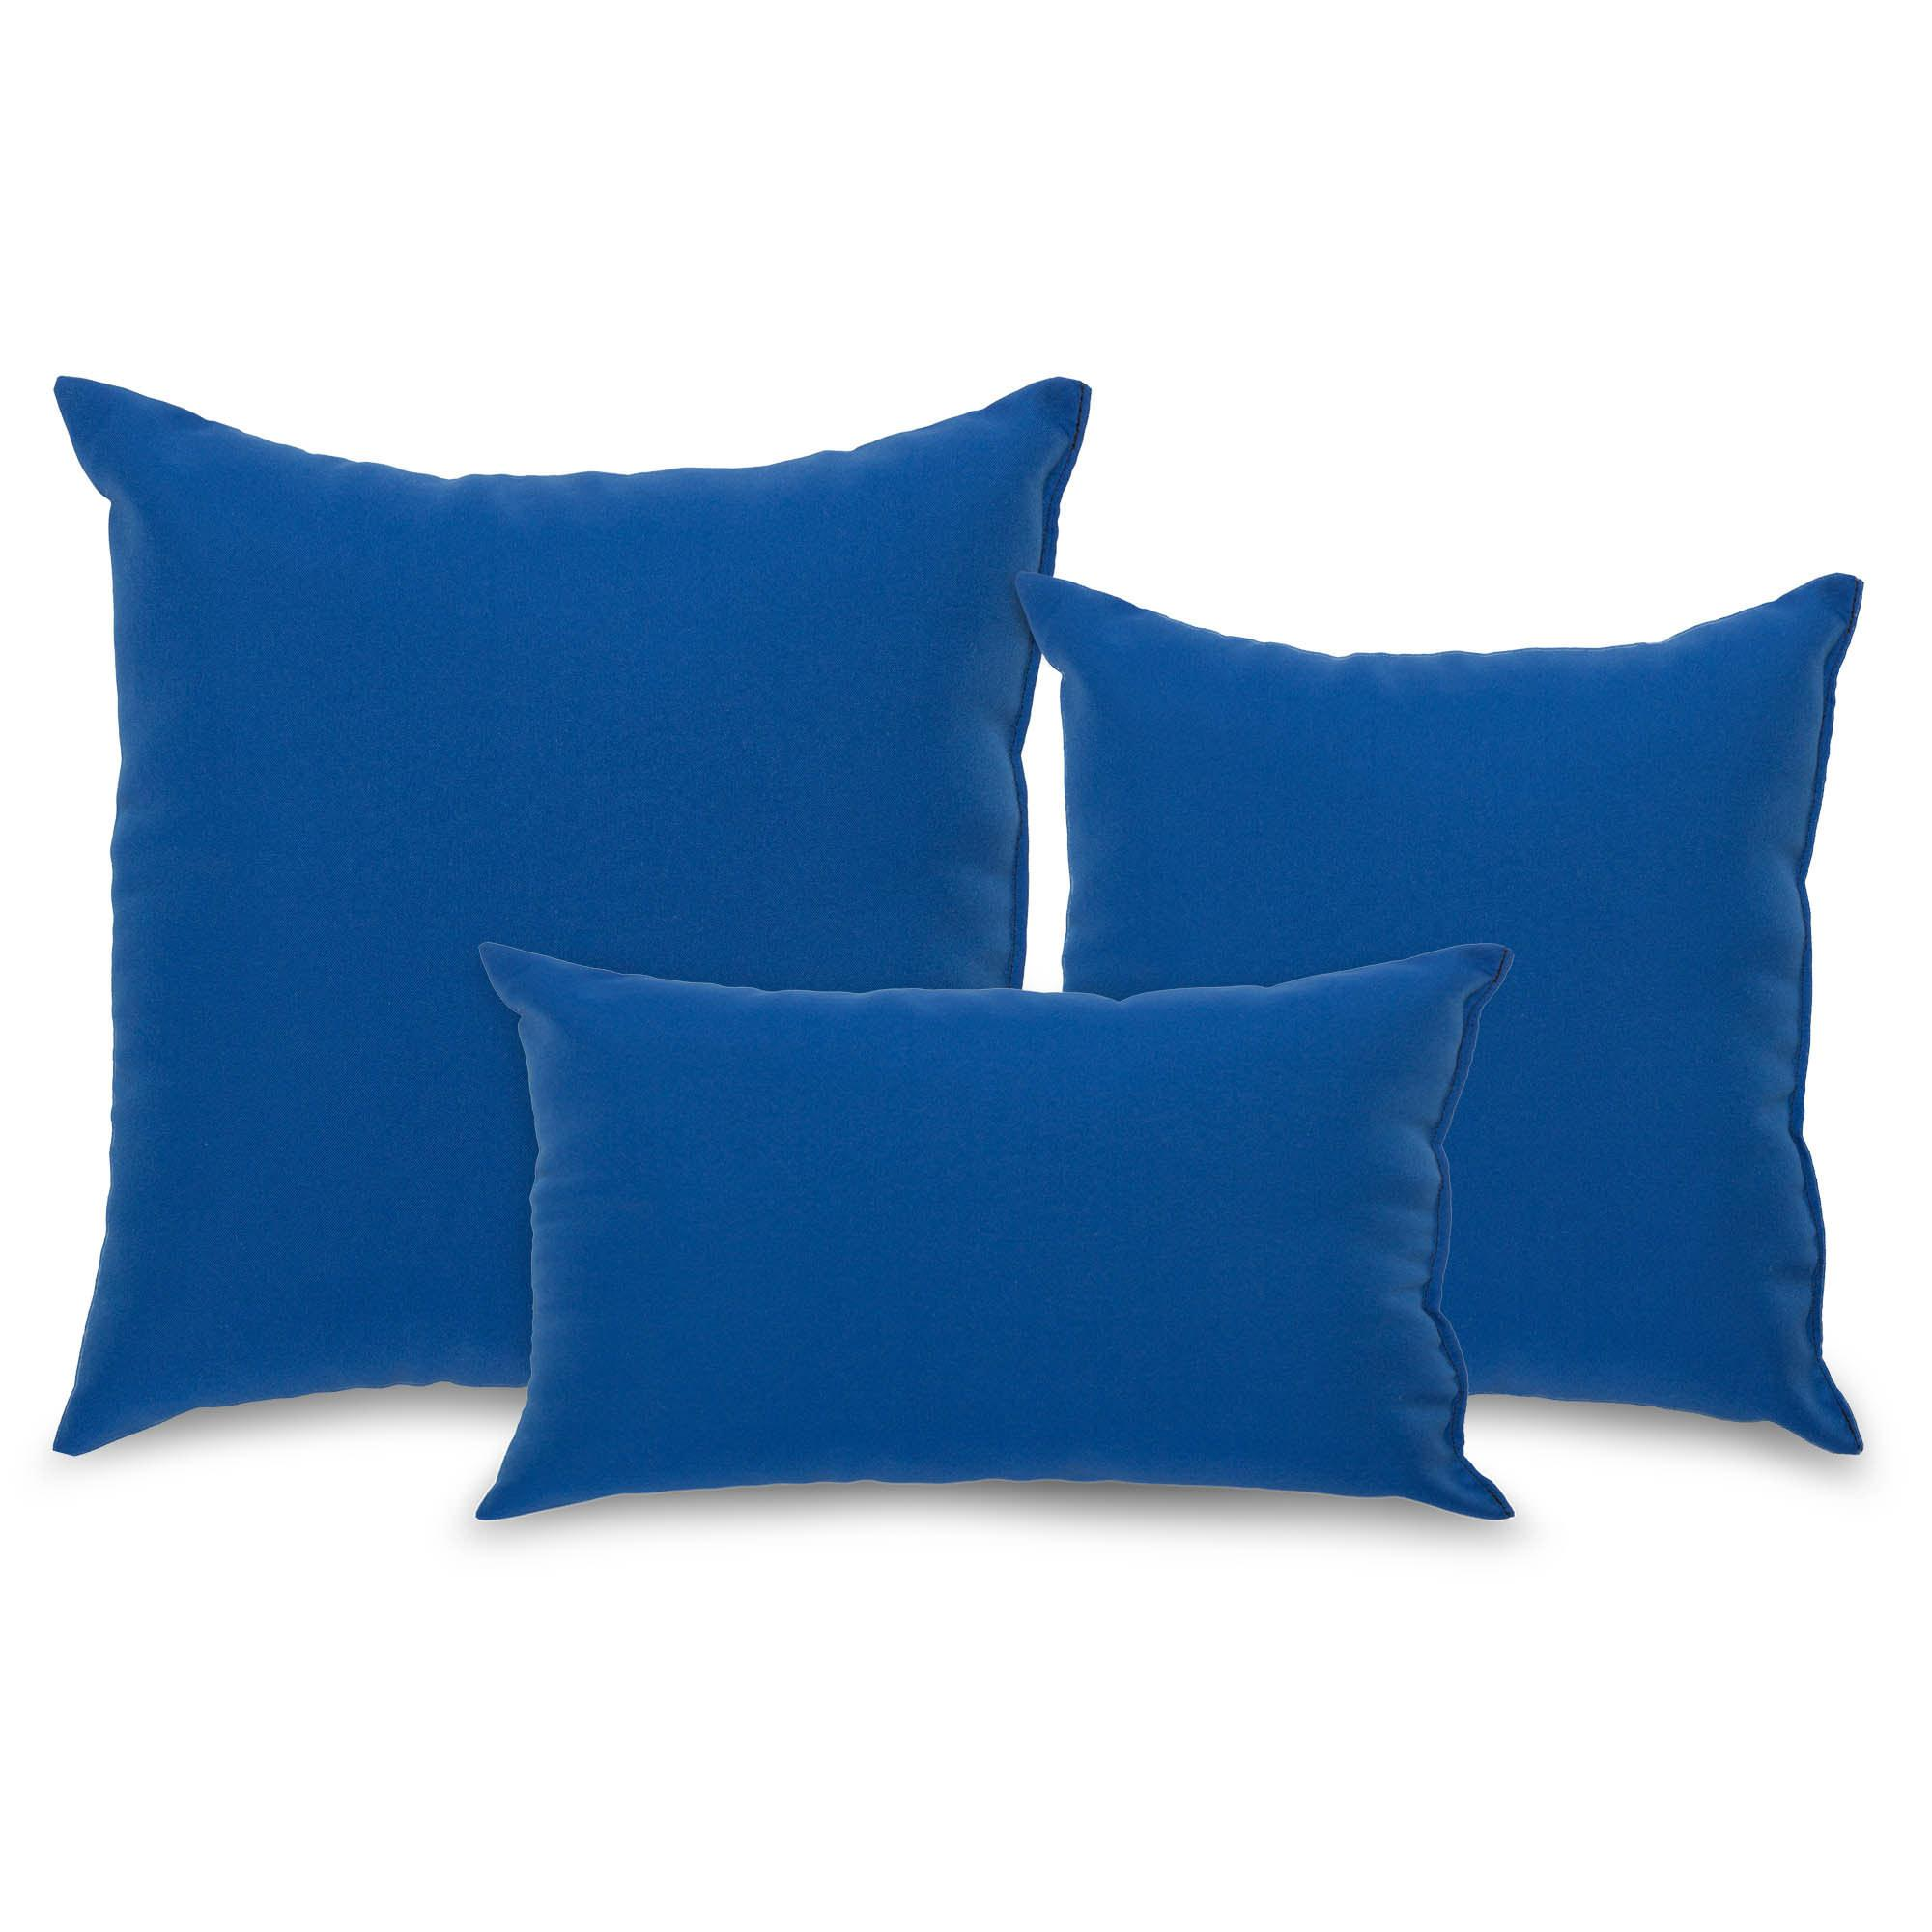 Throw Pillows Royal Blue : Royal Blue Outdoor Throw Pillow DFOHome